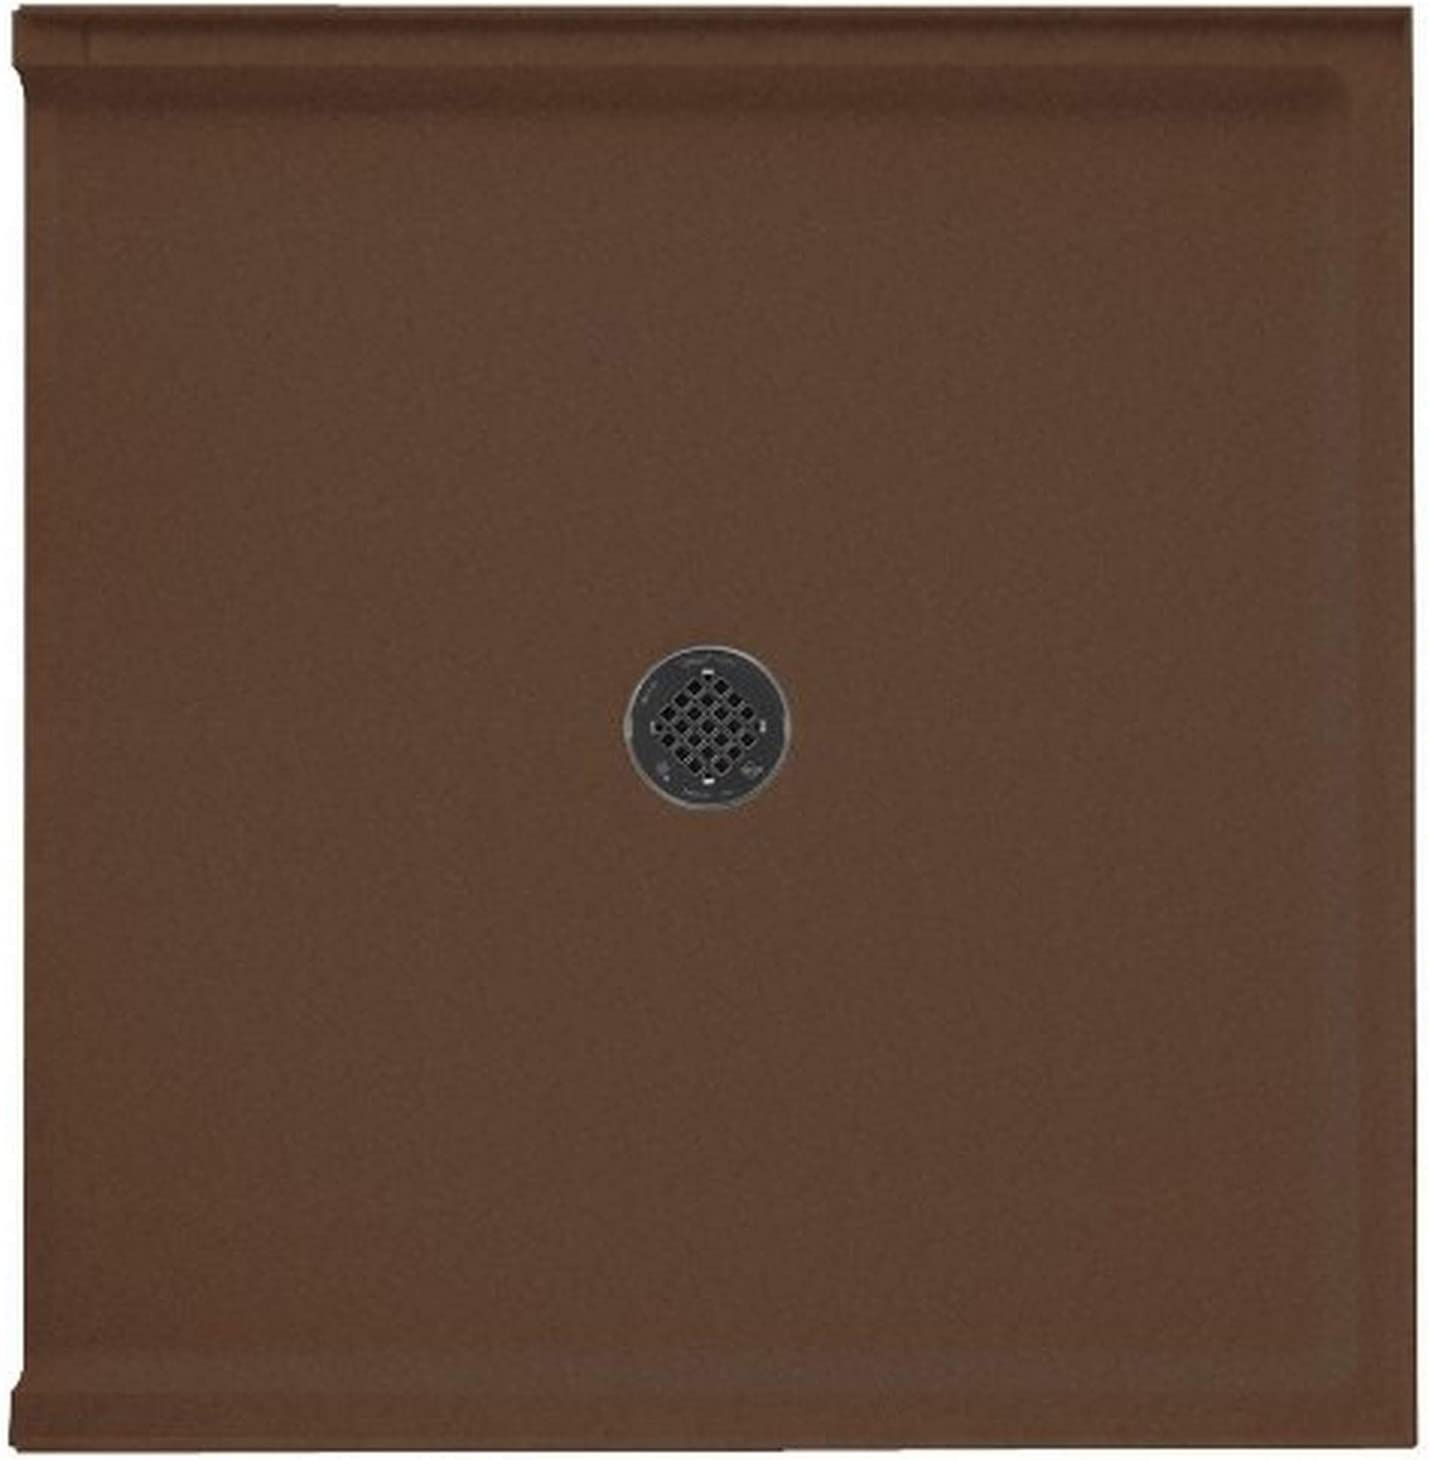 Swanstone Financial sales sale STS-3738-123 Shower Base Drain Acorn with Center Gorgeous